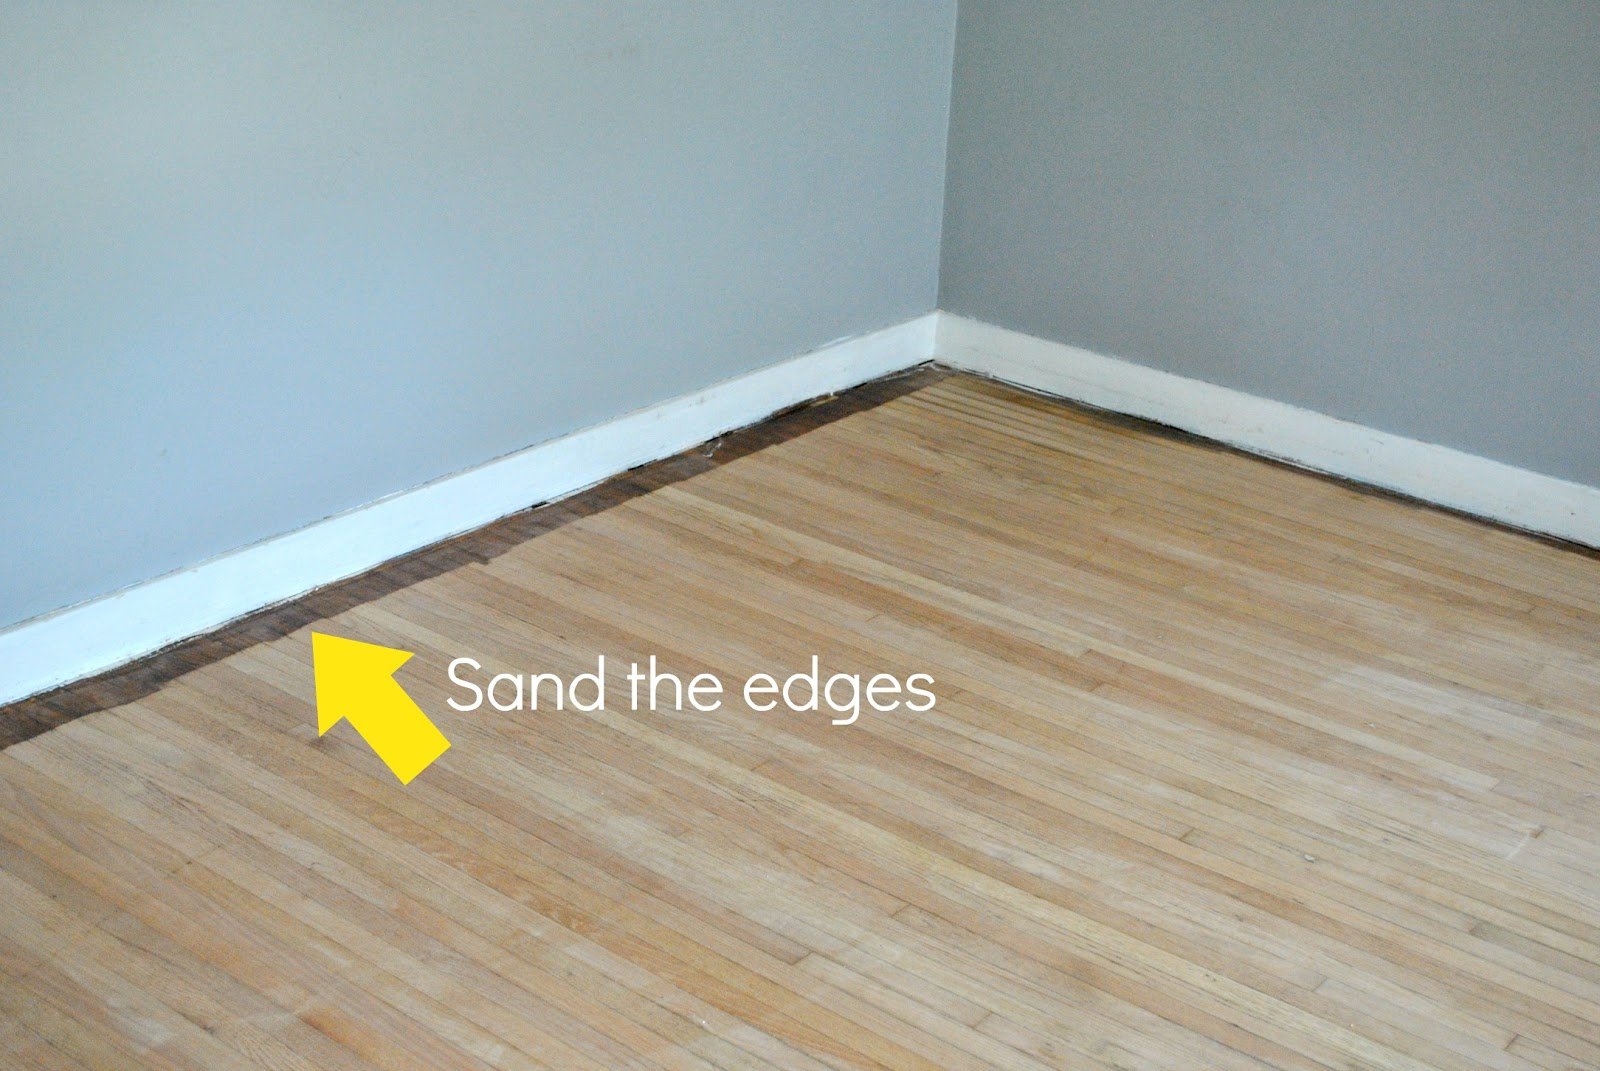 How to remove carpet and refinish wood floors part 1 classy clutter you can see there is a few inches of stain left on the outer perimeter of the flooring this is where the drum sander could not reach so you will have to solutioingenieria Choice Image